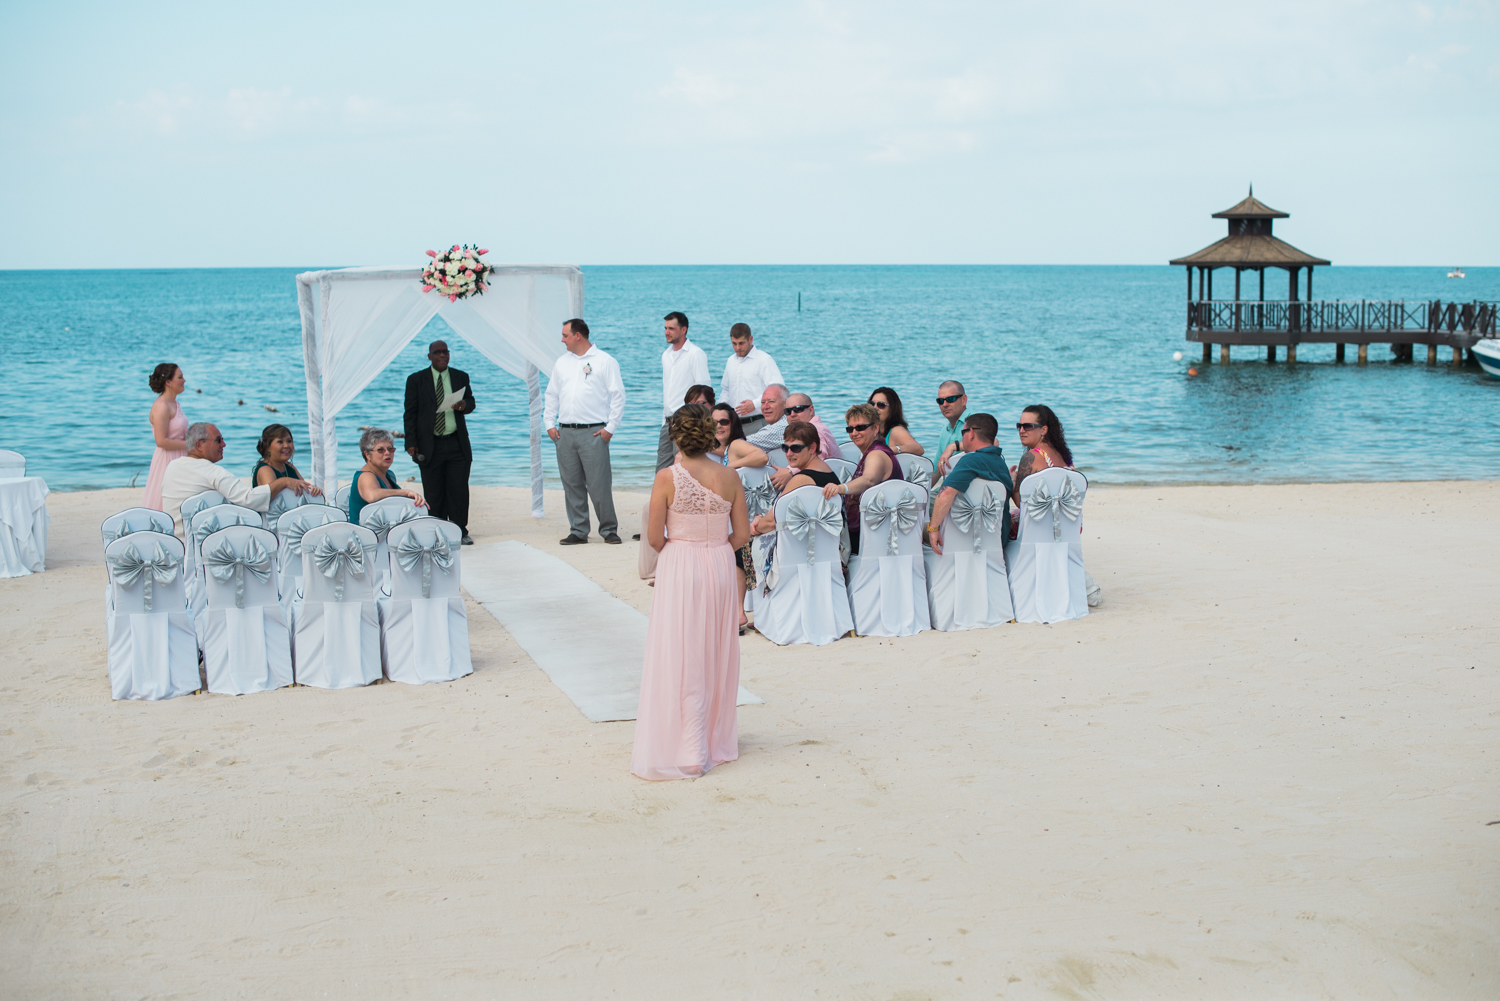 JadeandRyan-Montego-Bay-Jamaica-Wedding-Iberostar-Resort-Beach-49.jpg